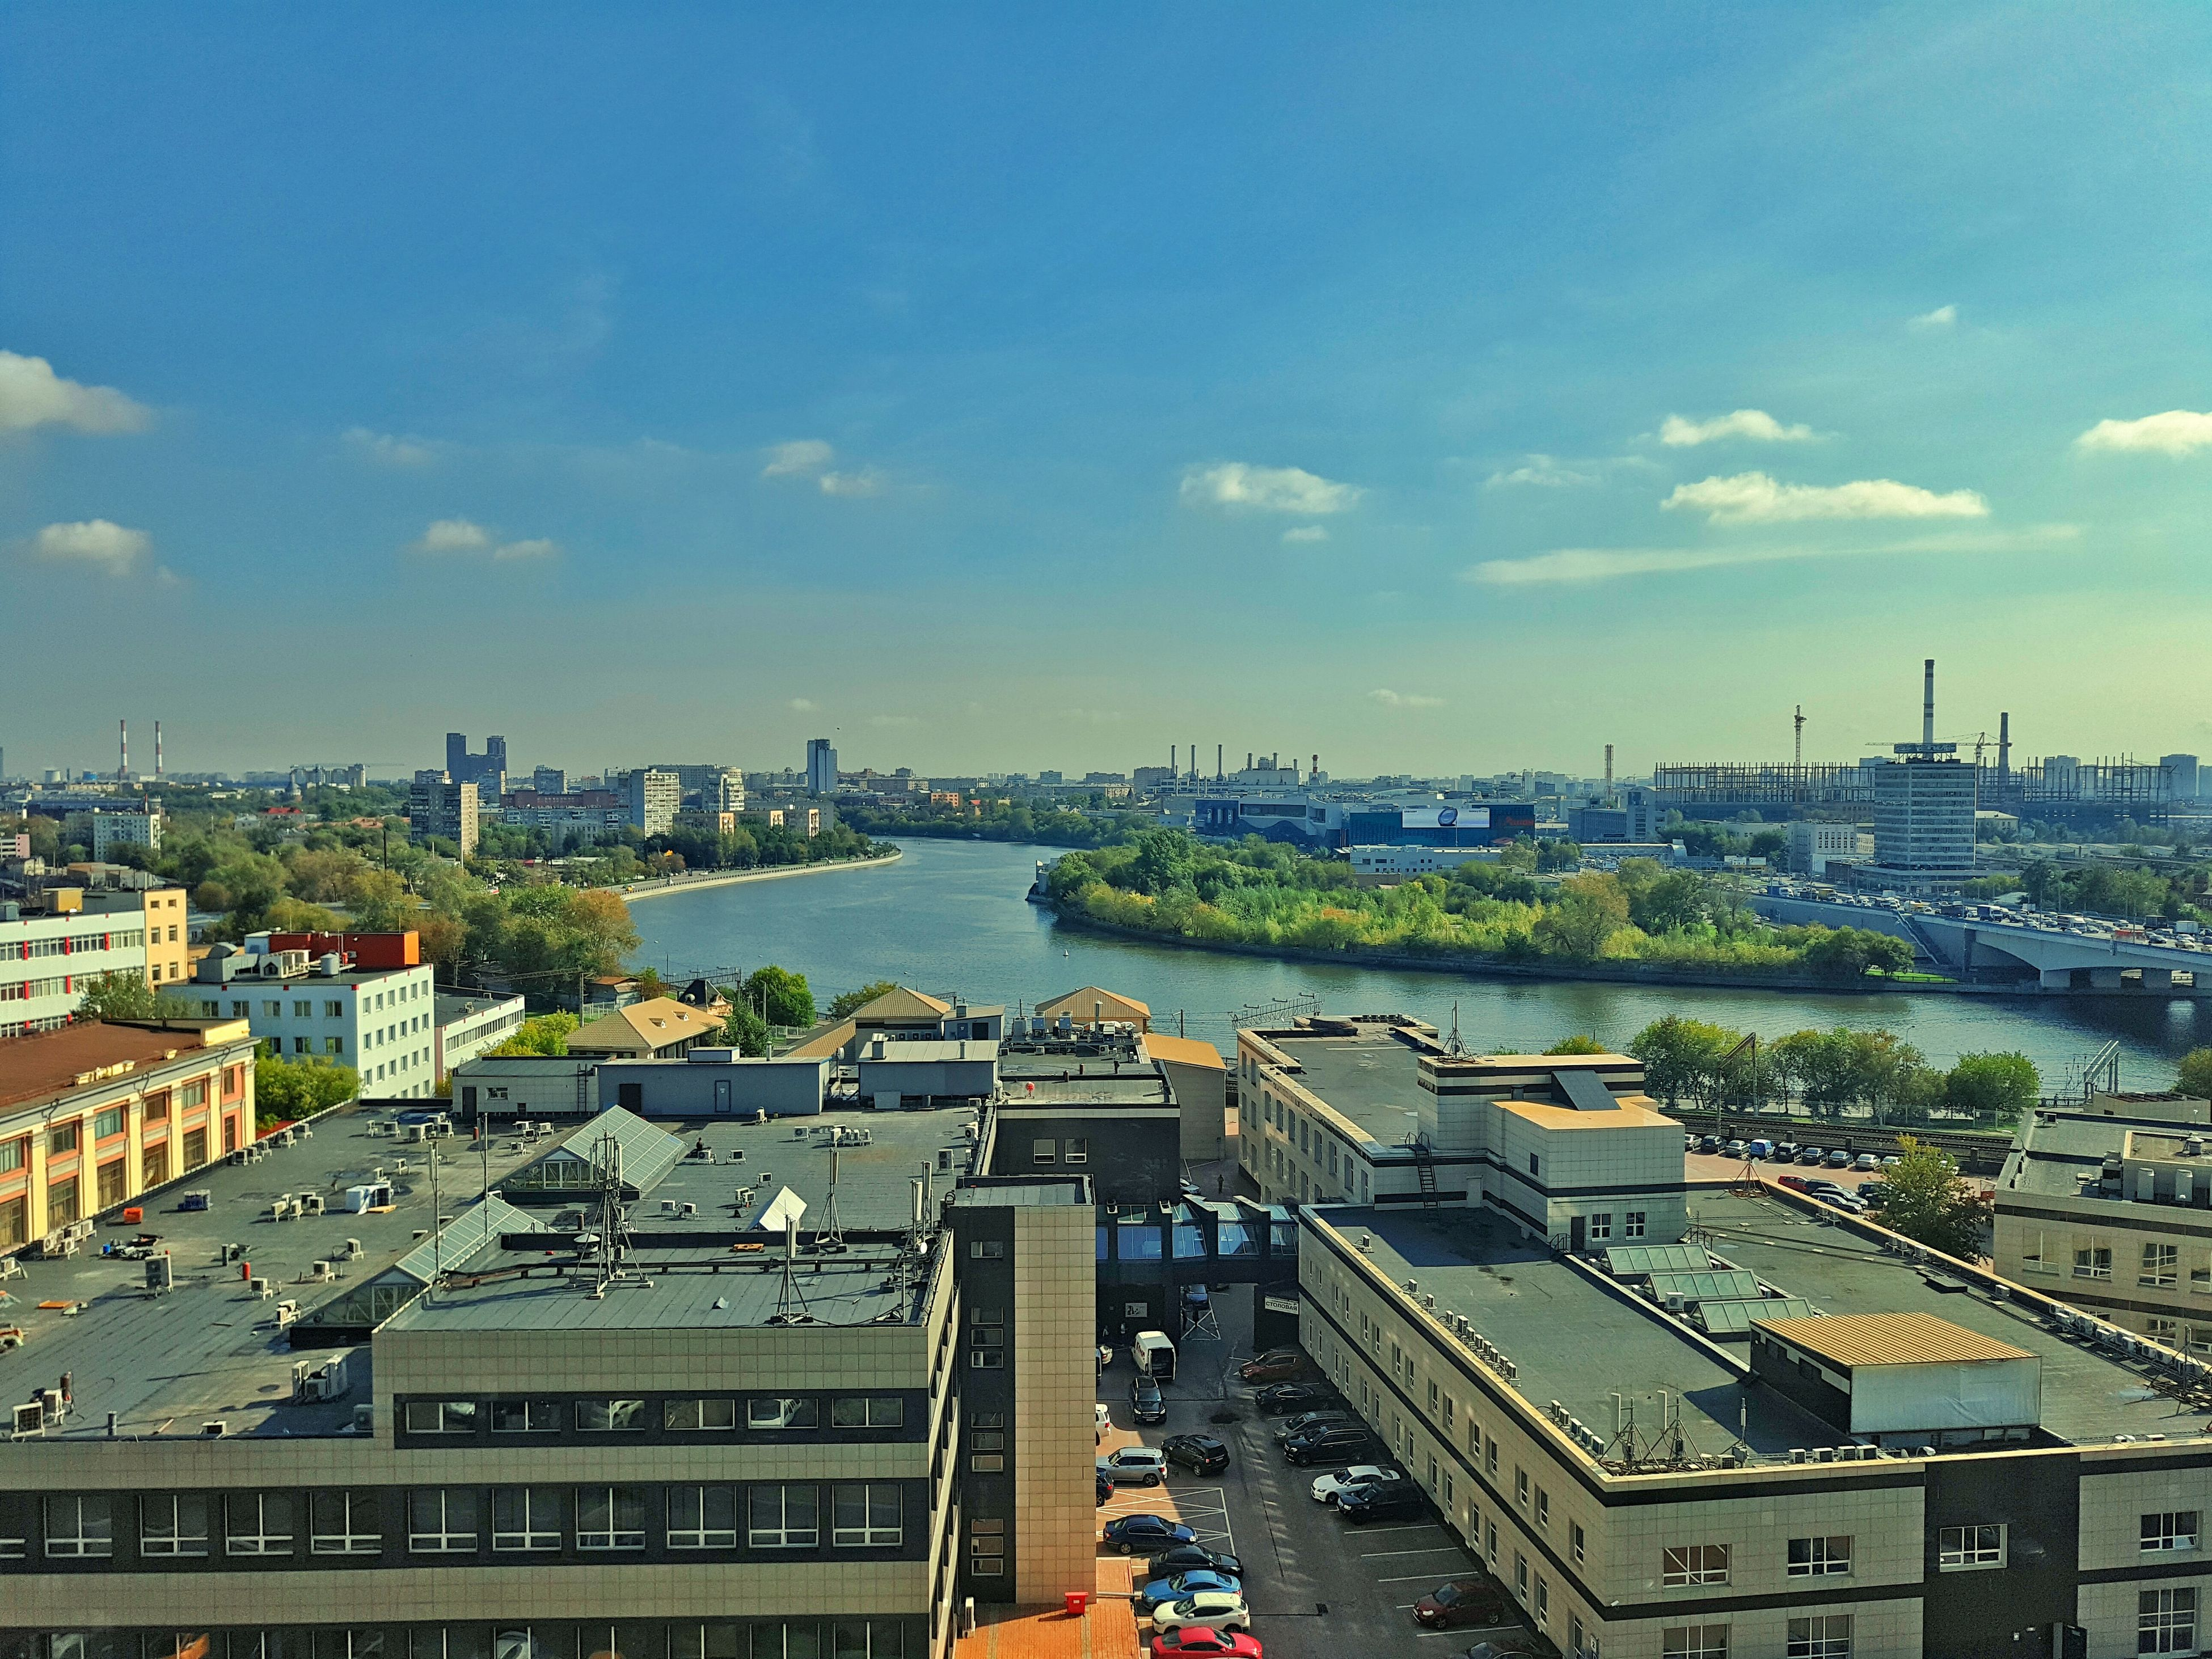 architecture, built structure, building exterior, city, water, river, high angle view, sky, transportation, bridge - man made structure, cityscape, mode of transport, cloud - sky, waterfront, day, cloud, engineering, riverbank, development, city life, outdoors, office building, capital cities, bridge